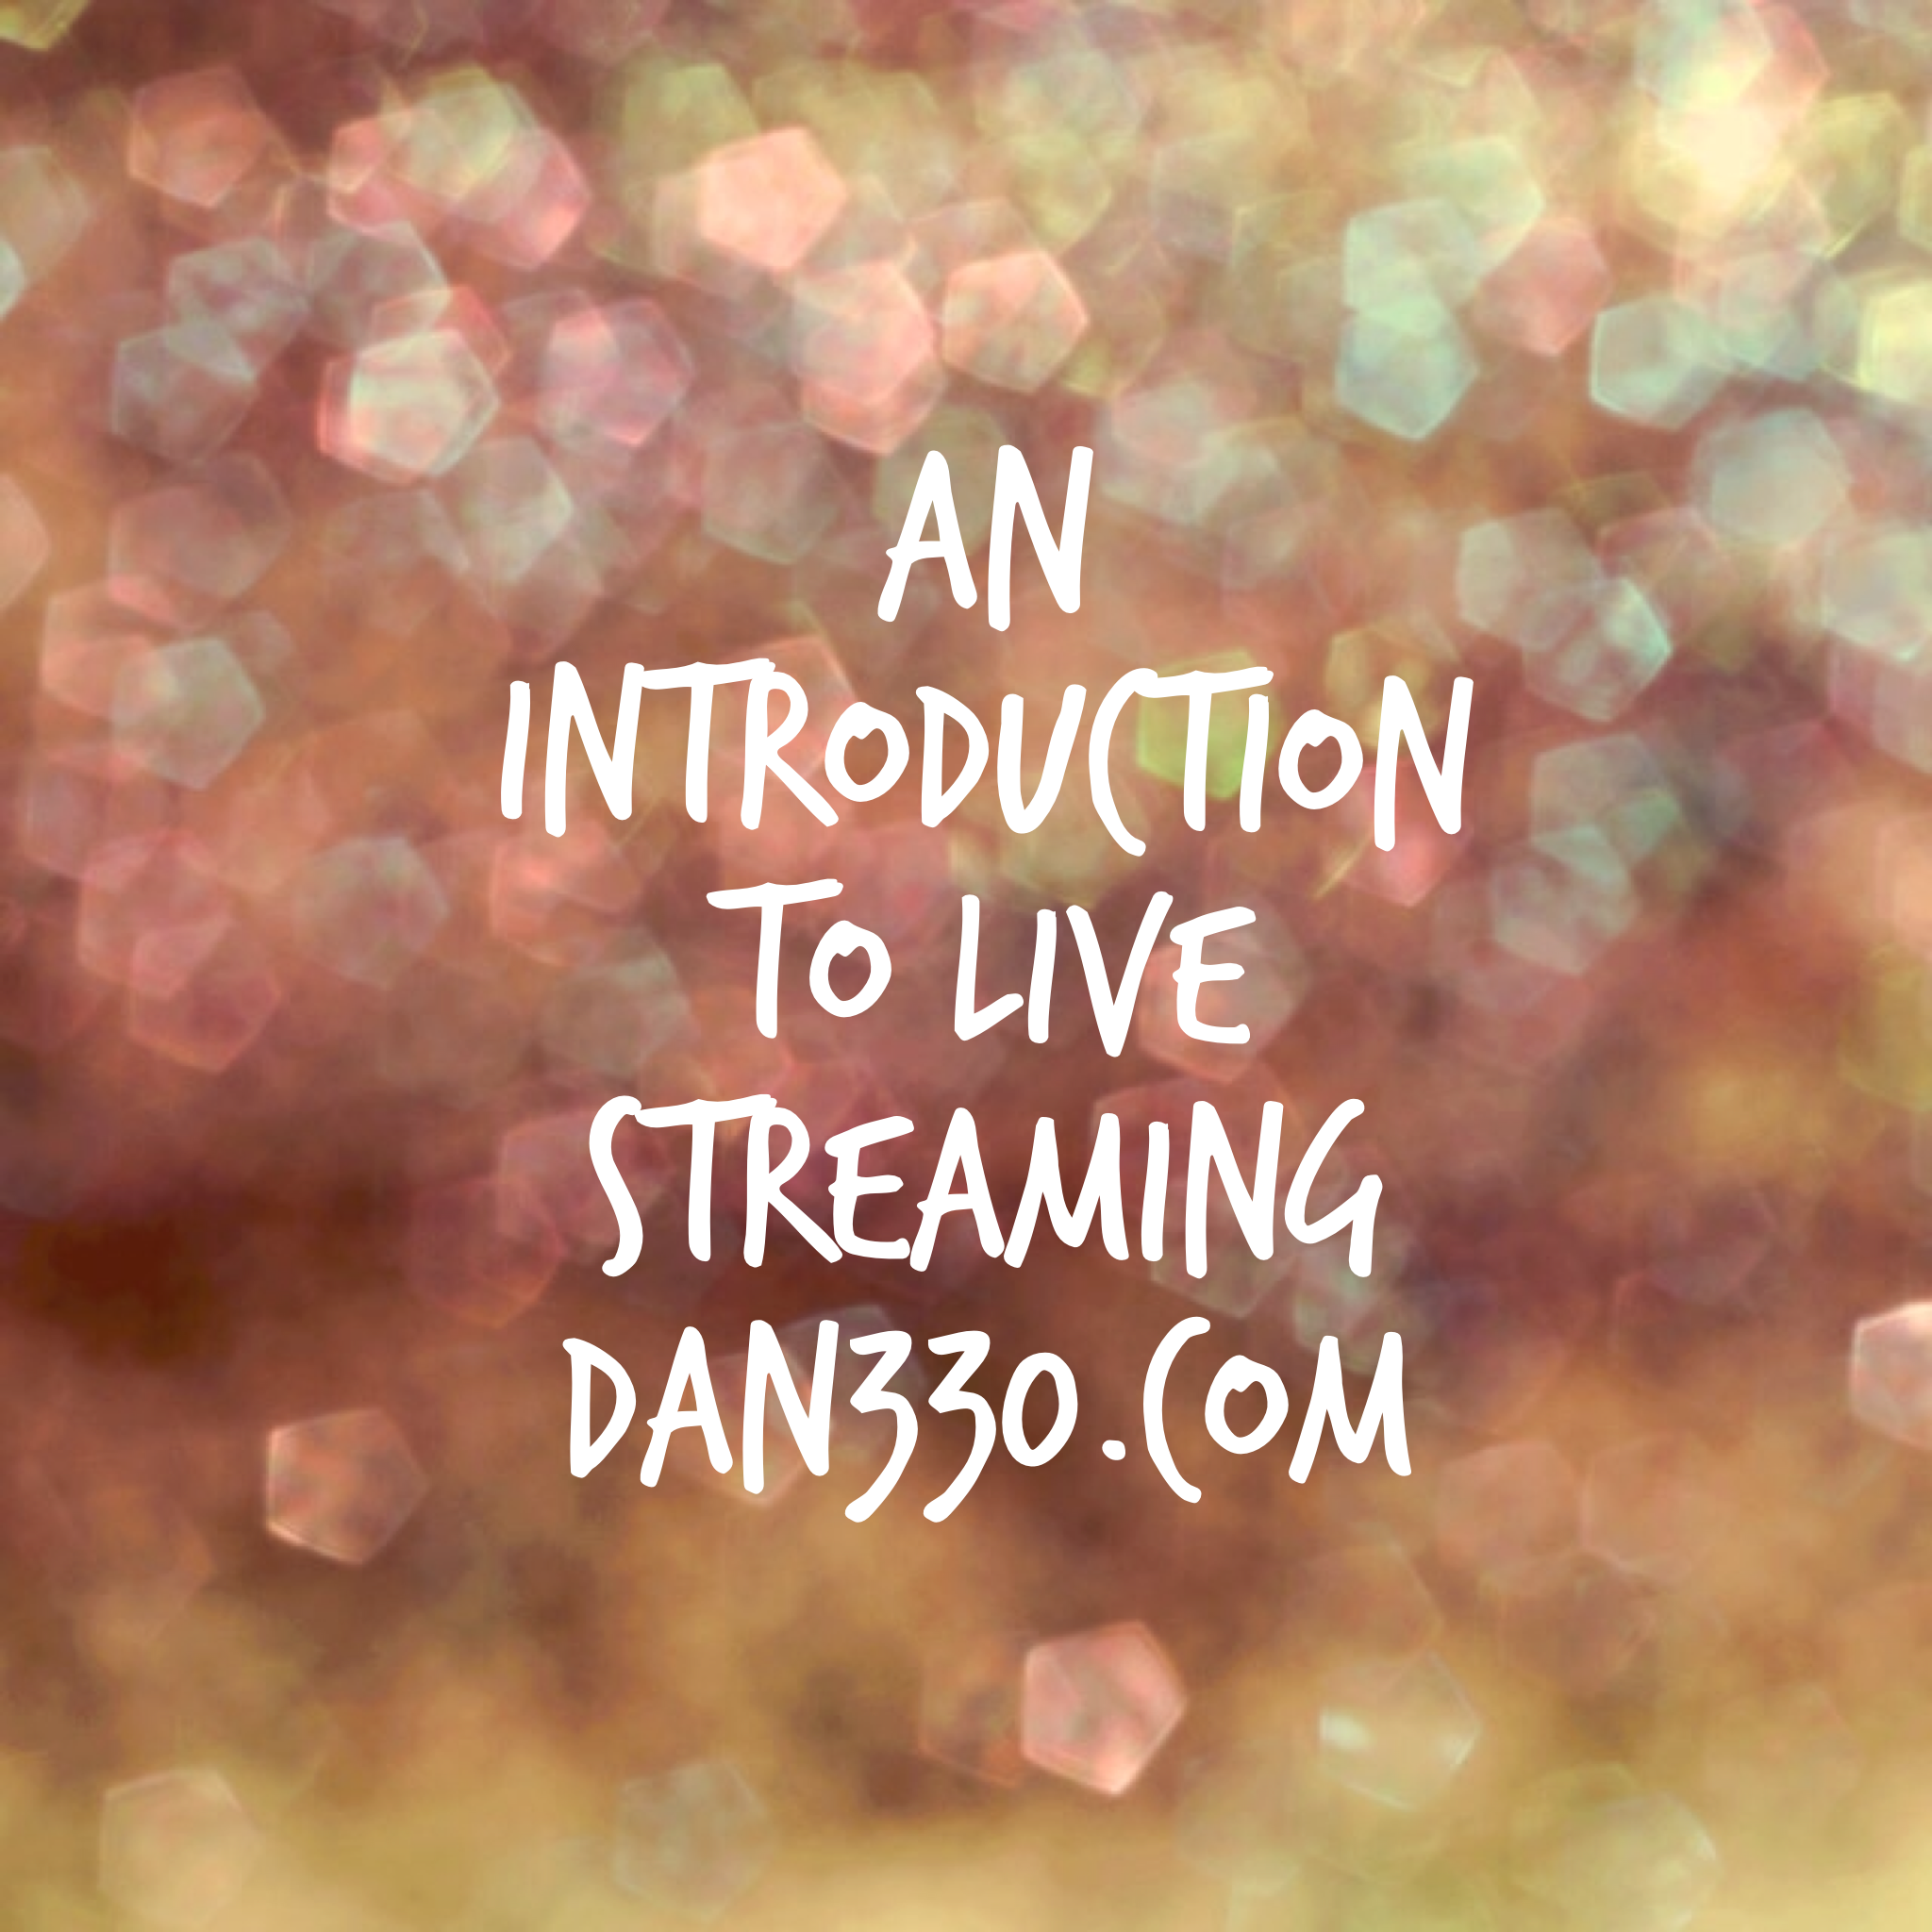 an introduction to live streaming